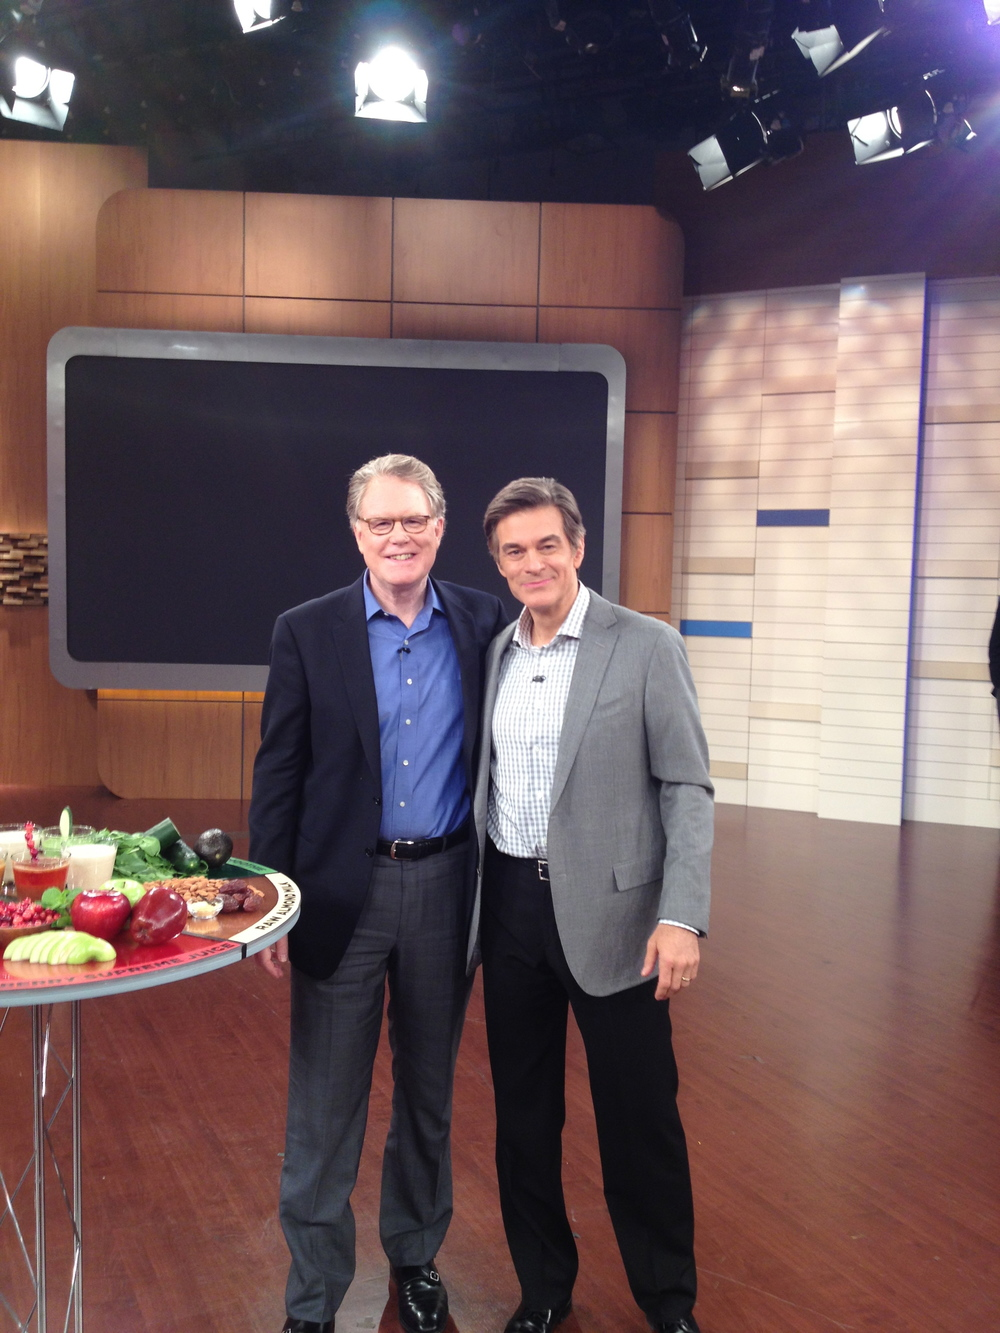 Watch Dr. Merrell discussing the 3-day juice cleanse from The Detox Prescription on The Dr. Oz Show: Part I and Part II.